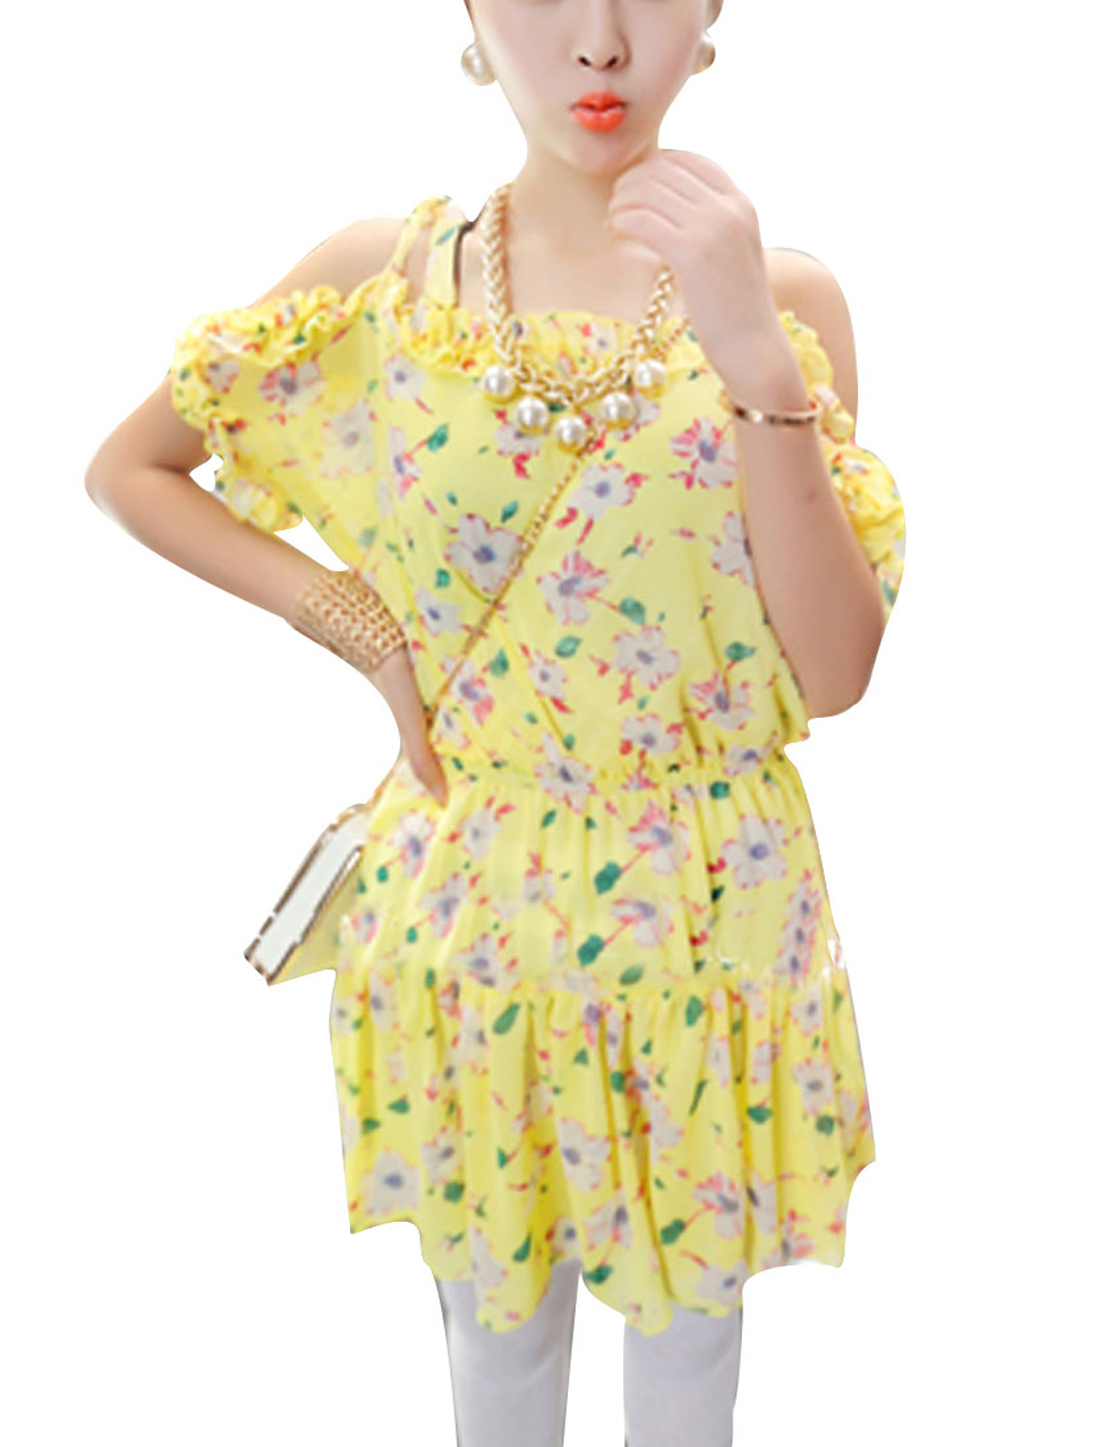 Lady Pullover Semi-sheer Ruffled Neckline Flower Pattern Light Yellow Pleated Dress XS